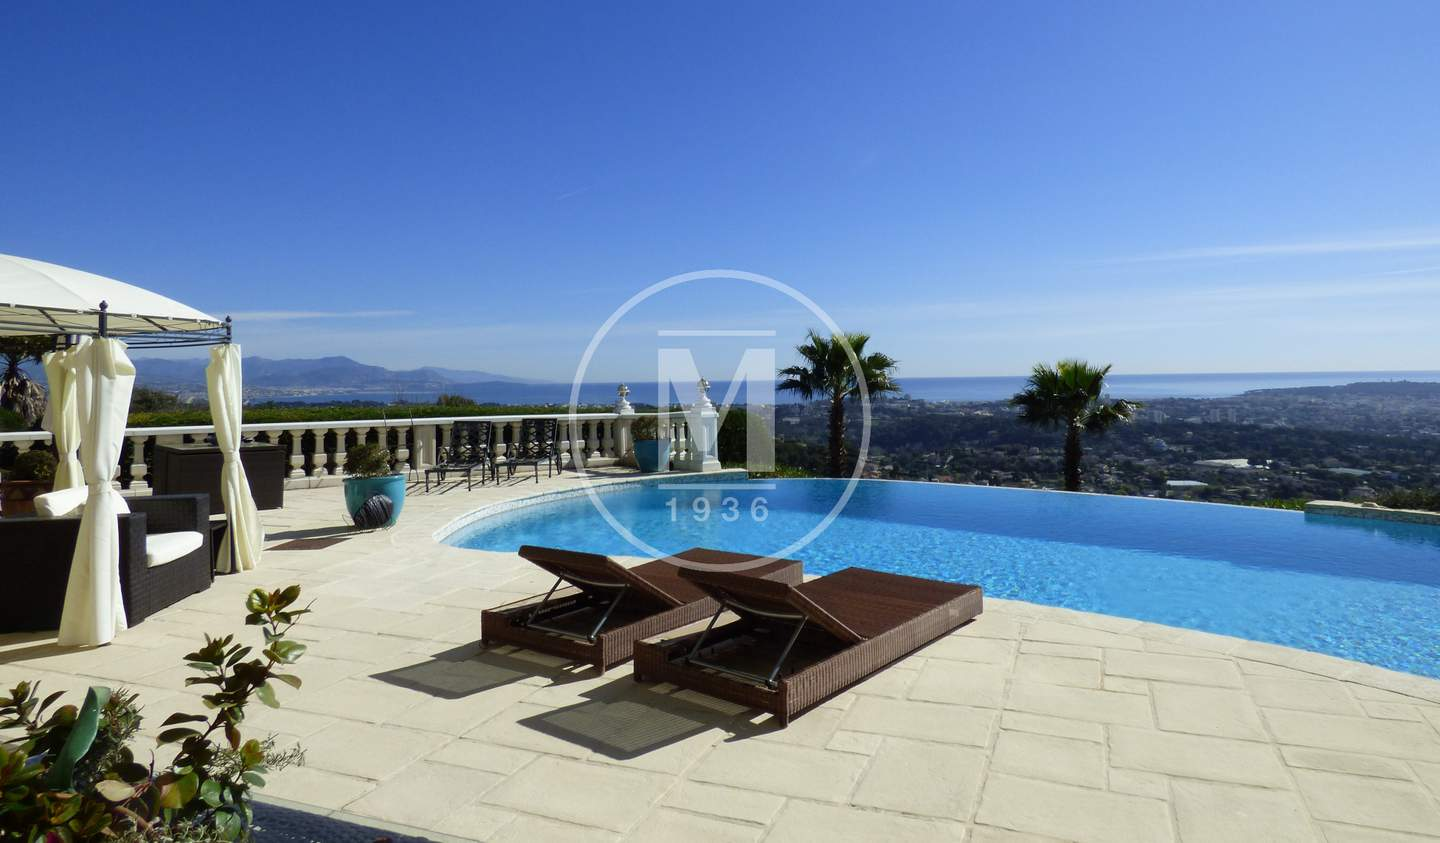 House with pool and terrace Le golfe juan